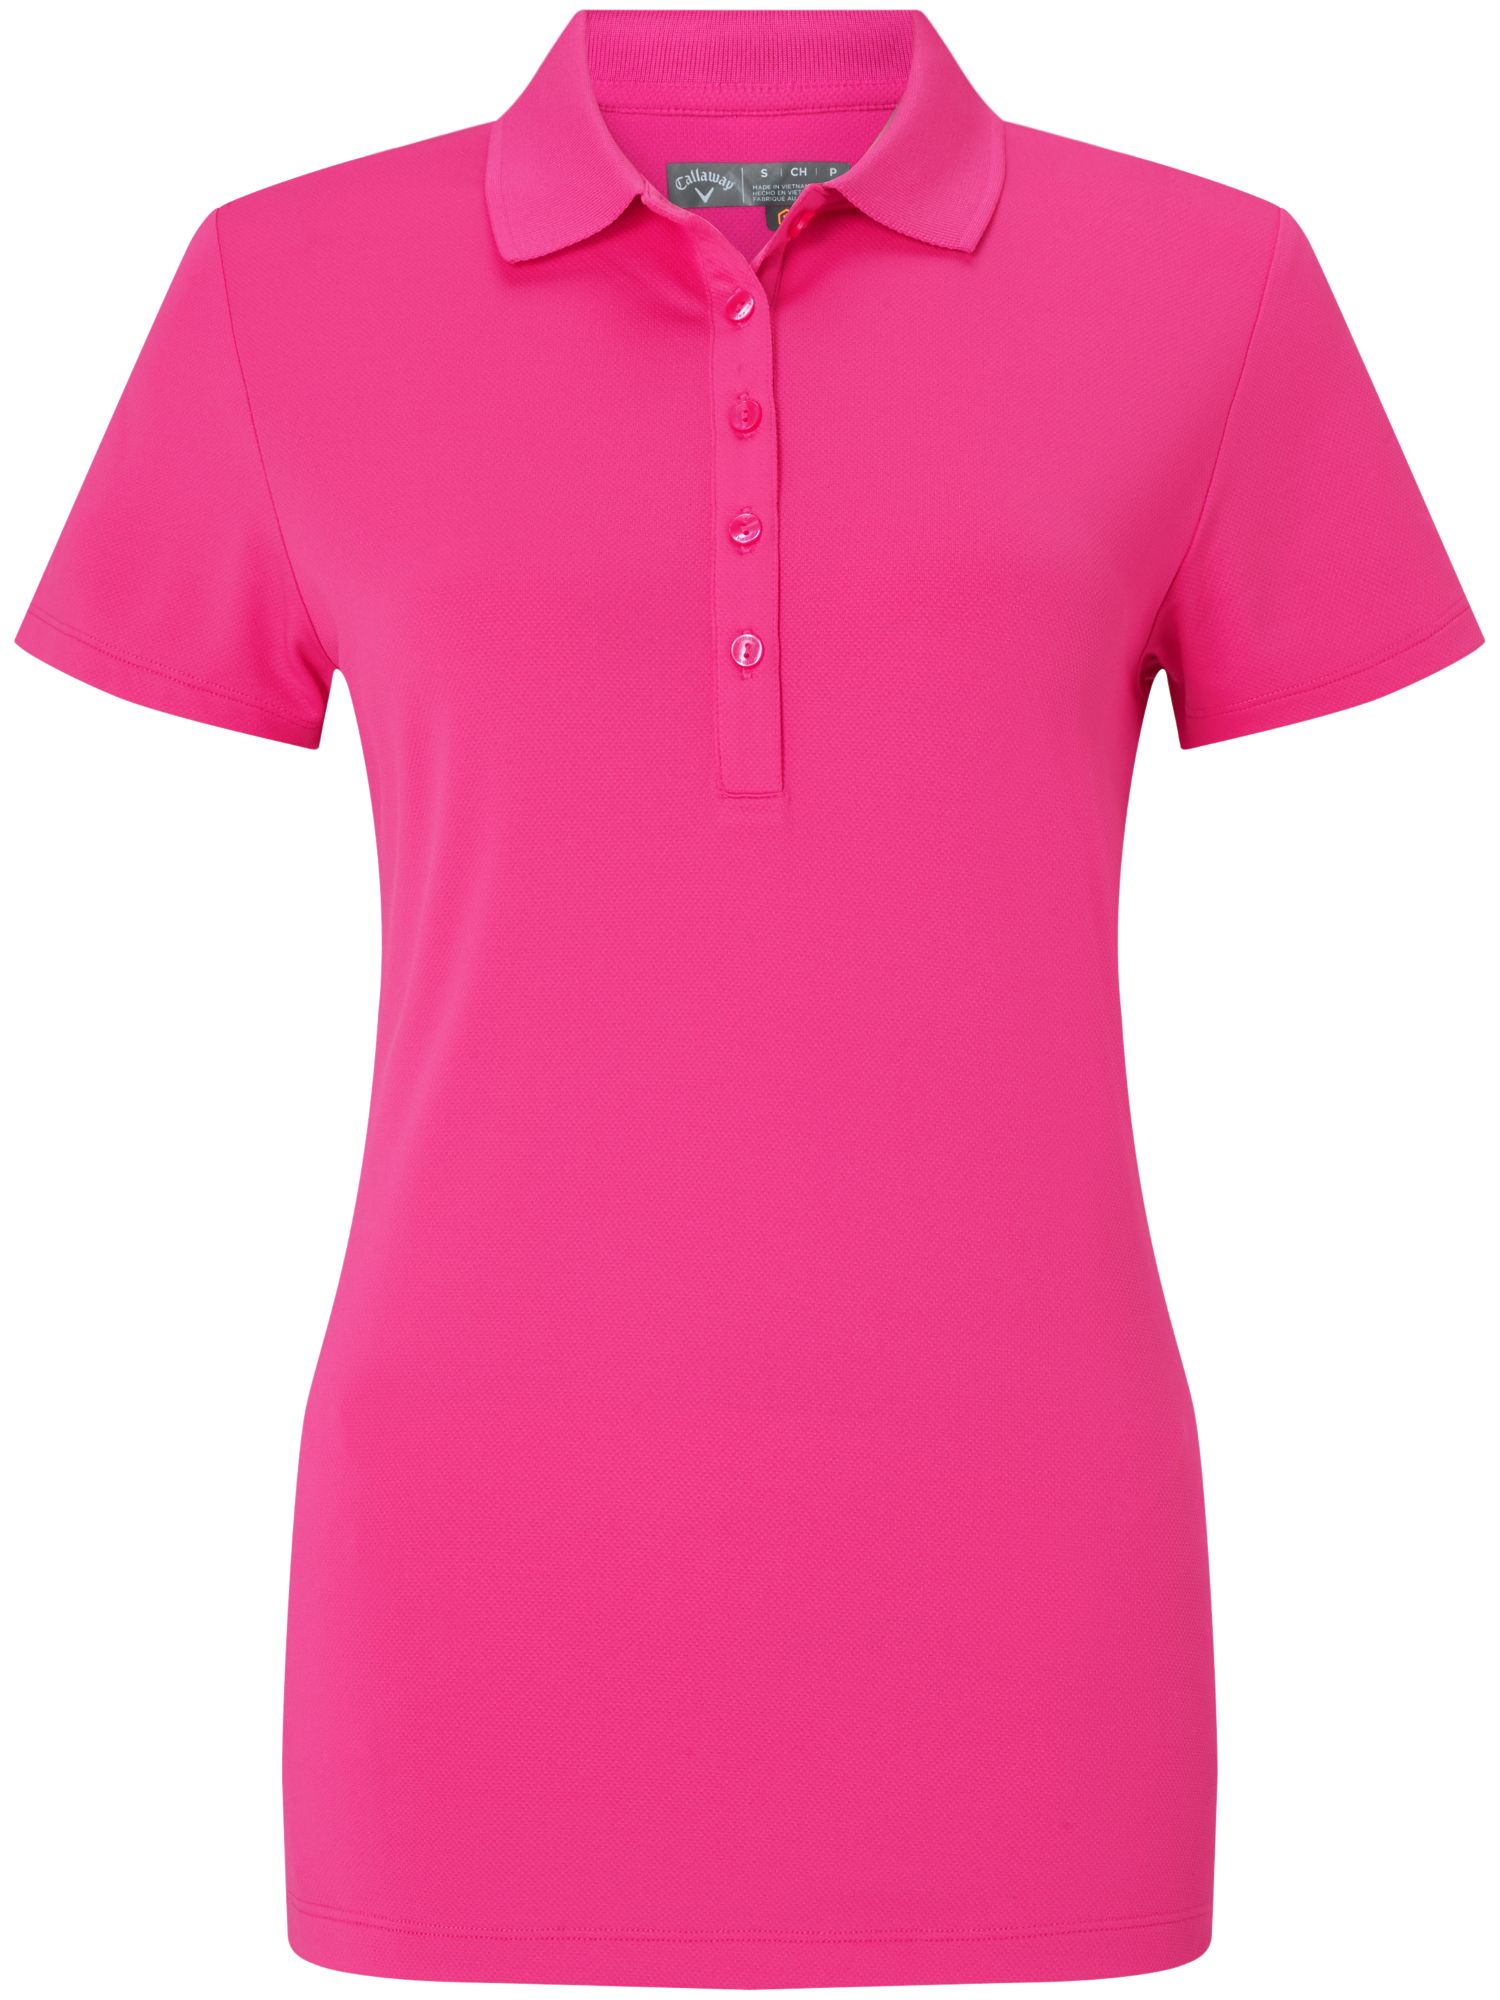 Callaway Hex Polo, Pink